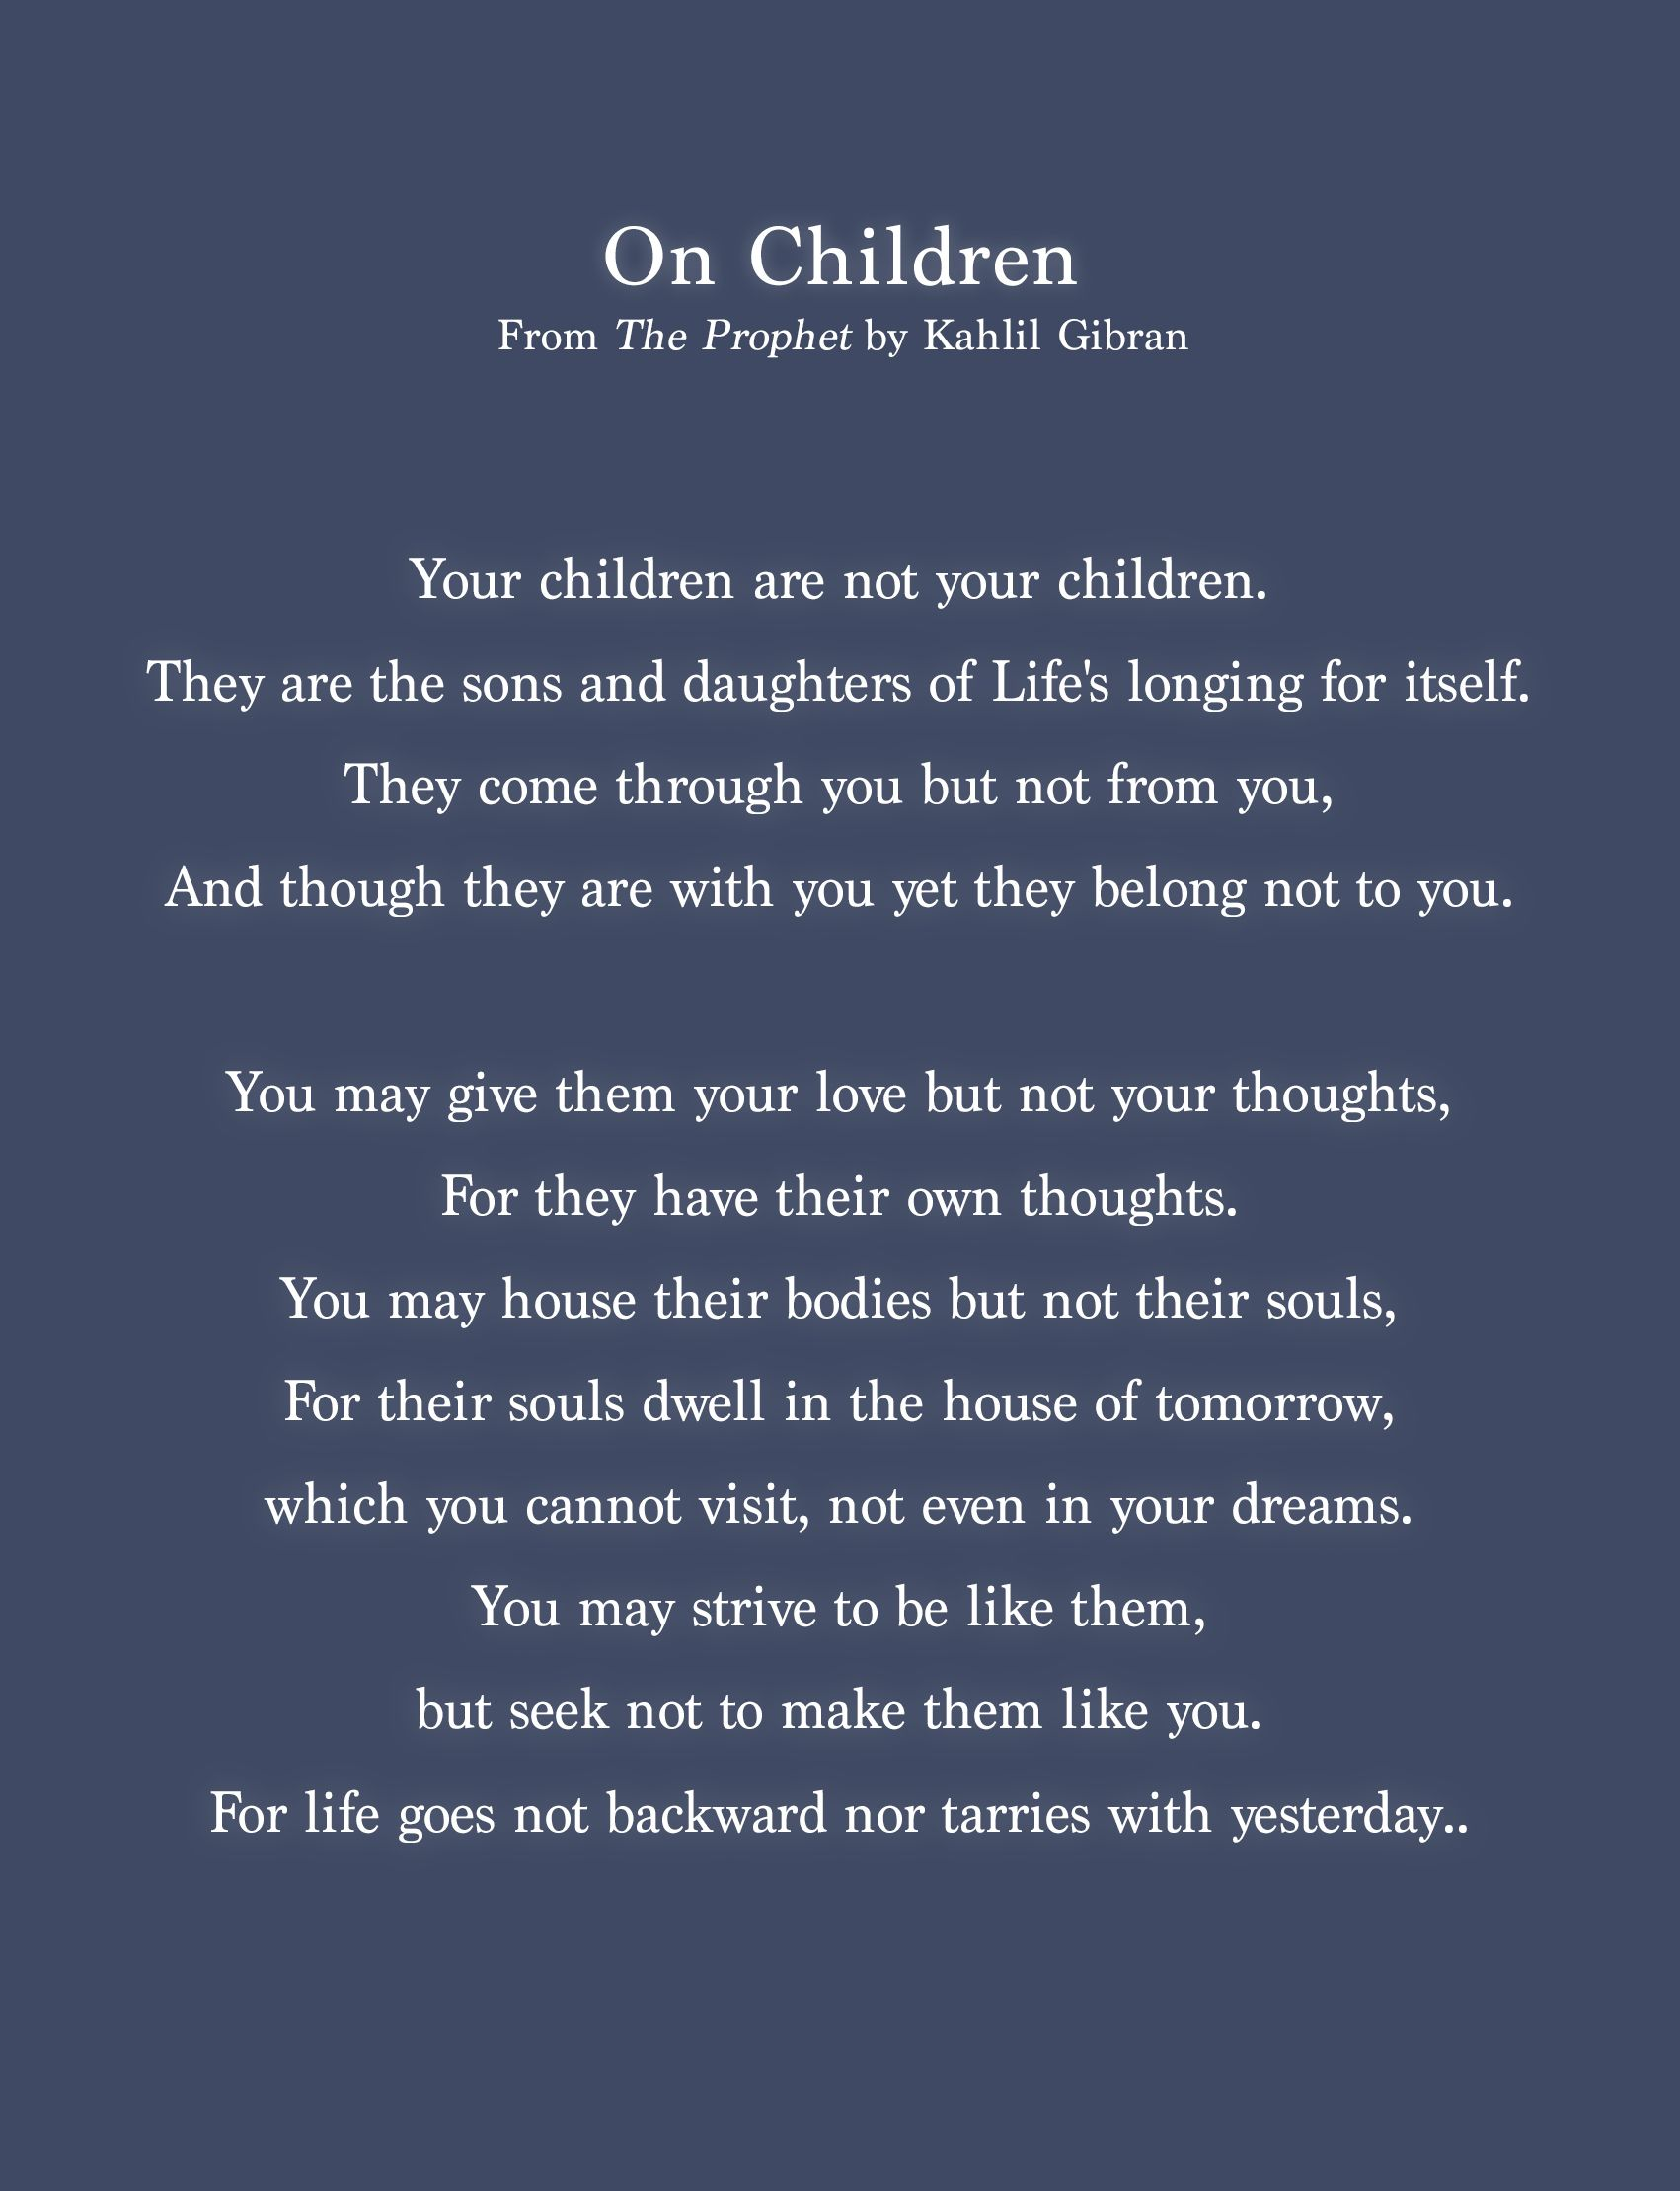 Khalil Gibran Quotes On Children : khalil, gibran, quotes, children, Children